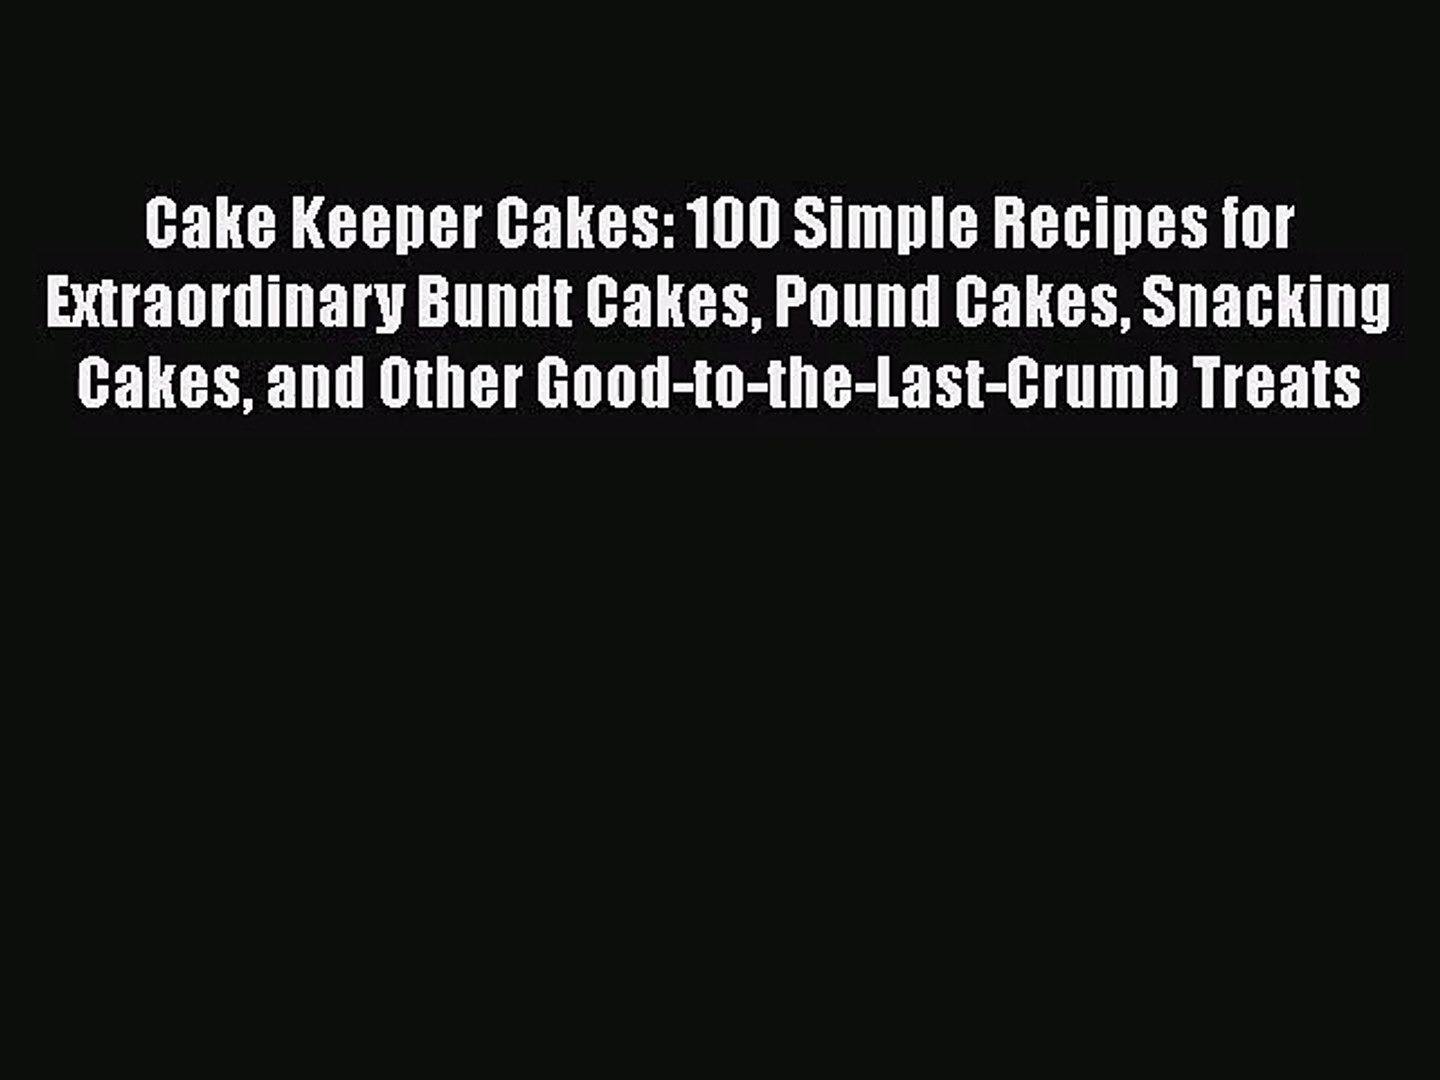 PDF Download Cake Keeper Cakes: 100 Simple Recipes for Extraordinary Bundt Cakes Pound Cakes